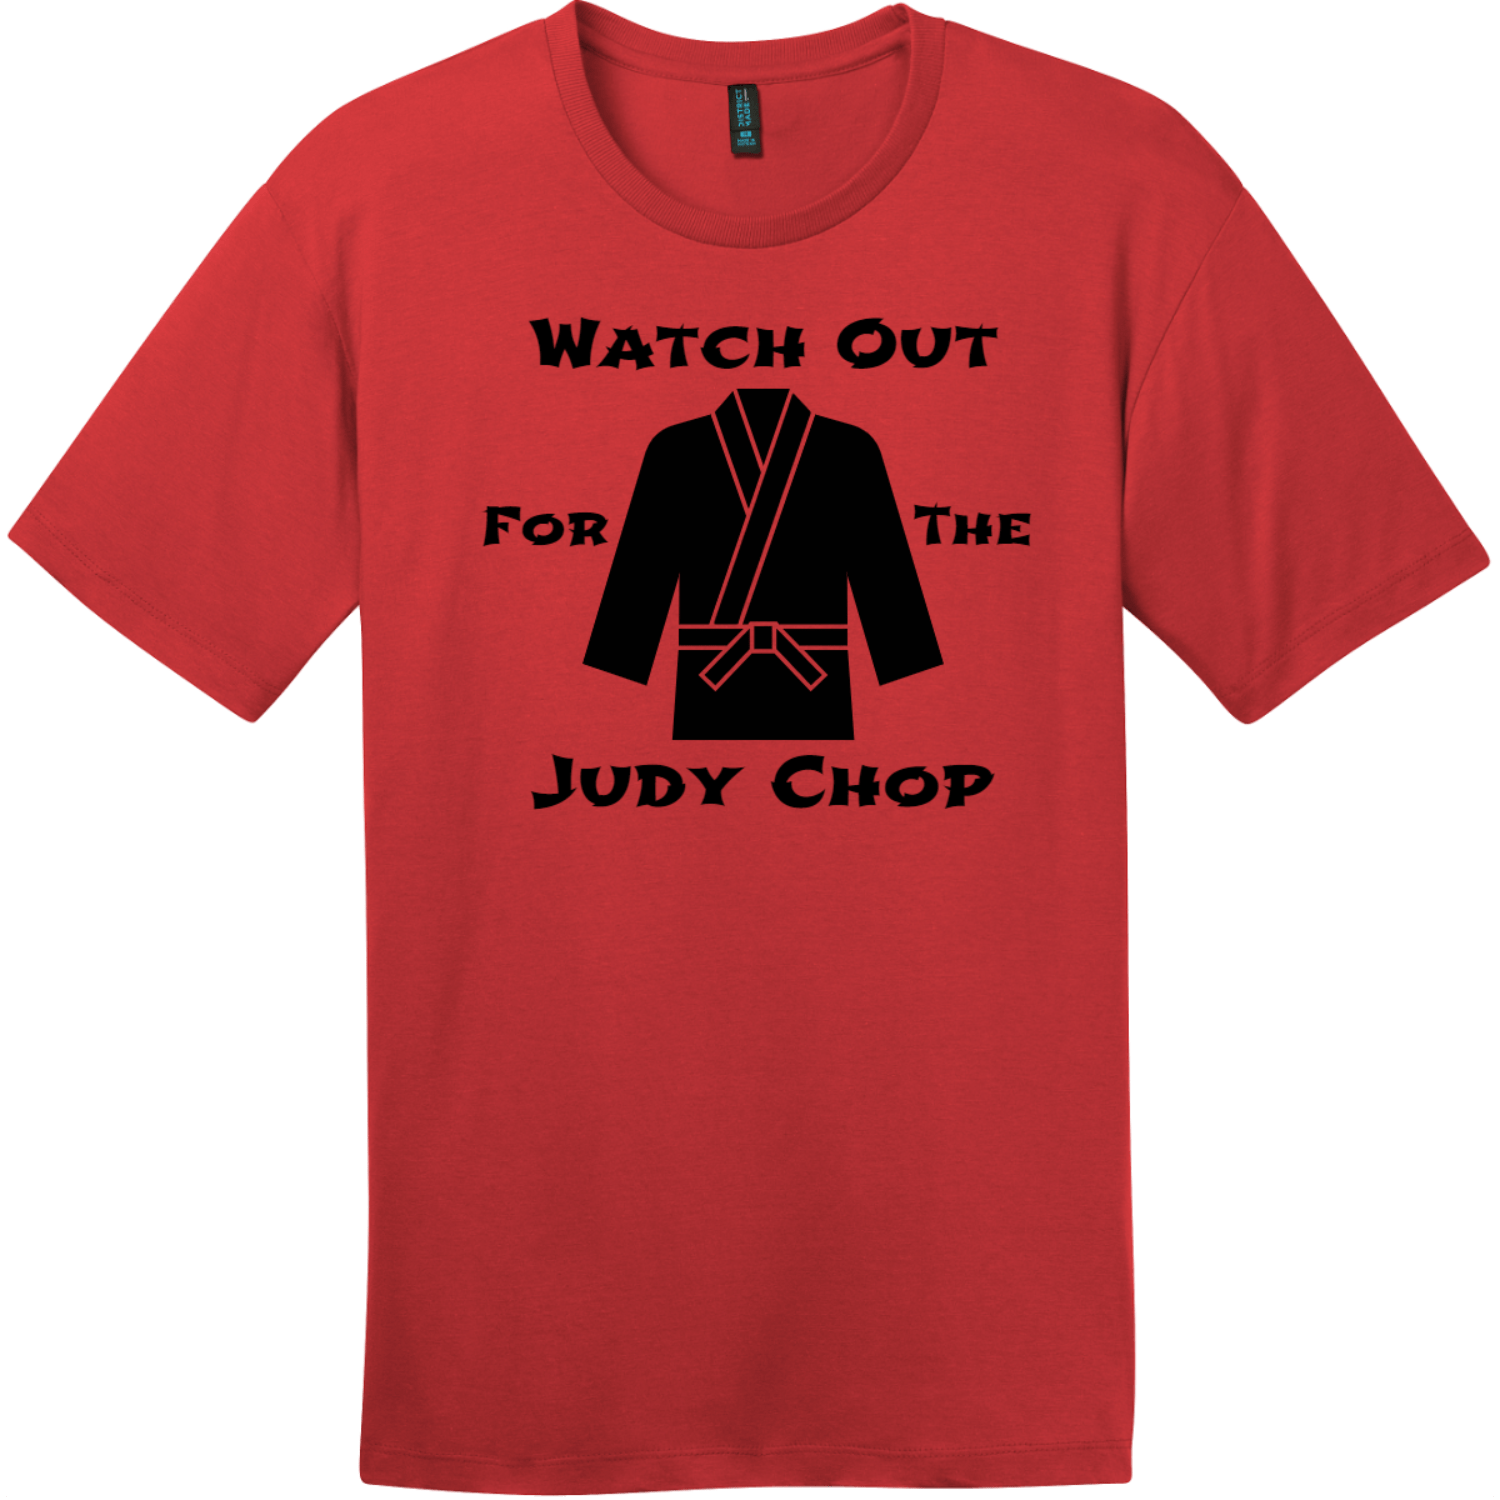 Watch Out For The Judy Chop T-Shirt Classic Red District Perfect Weight Tee DT104